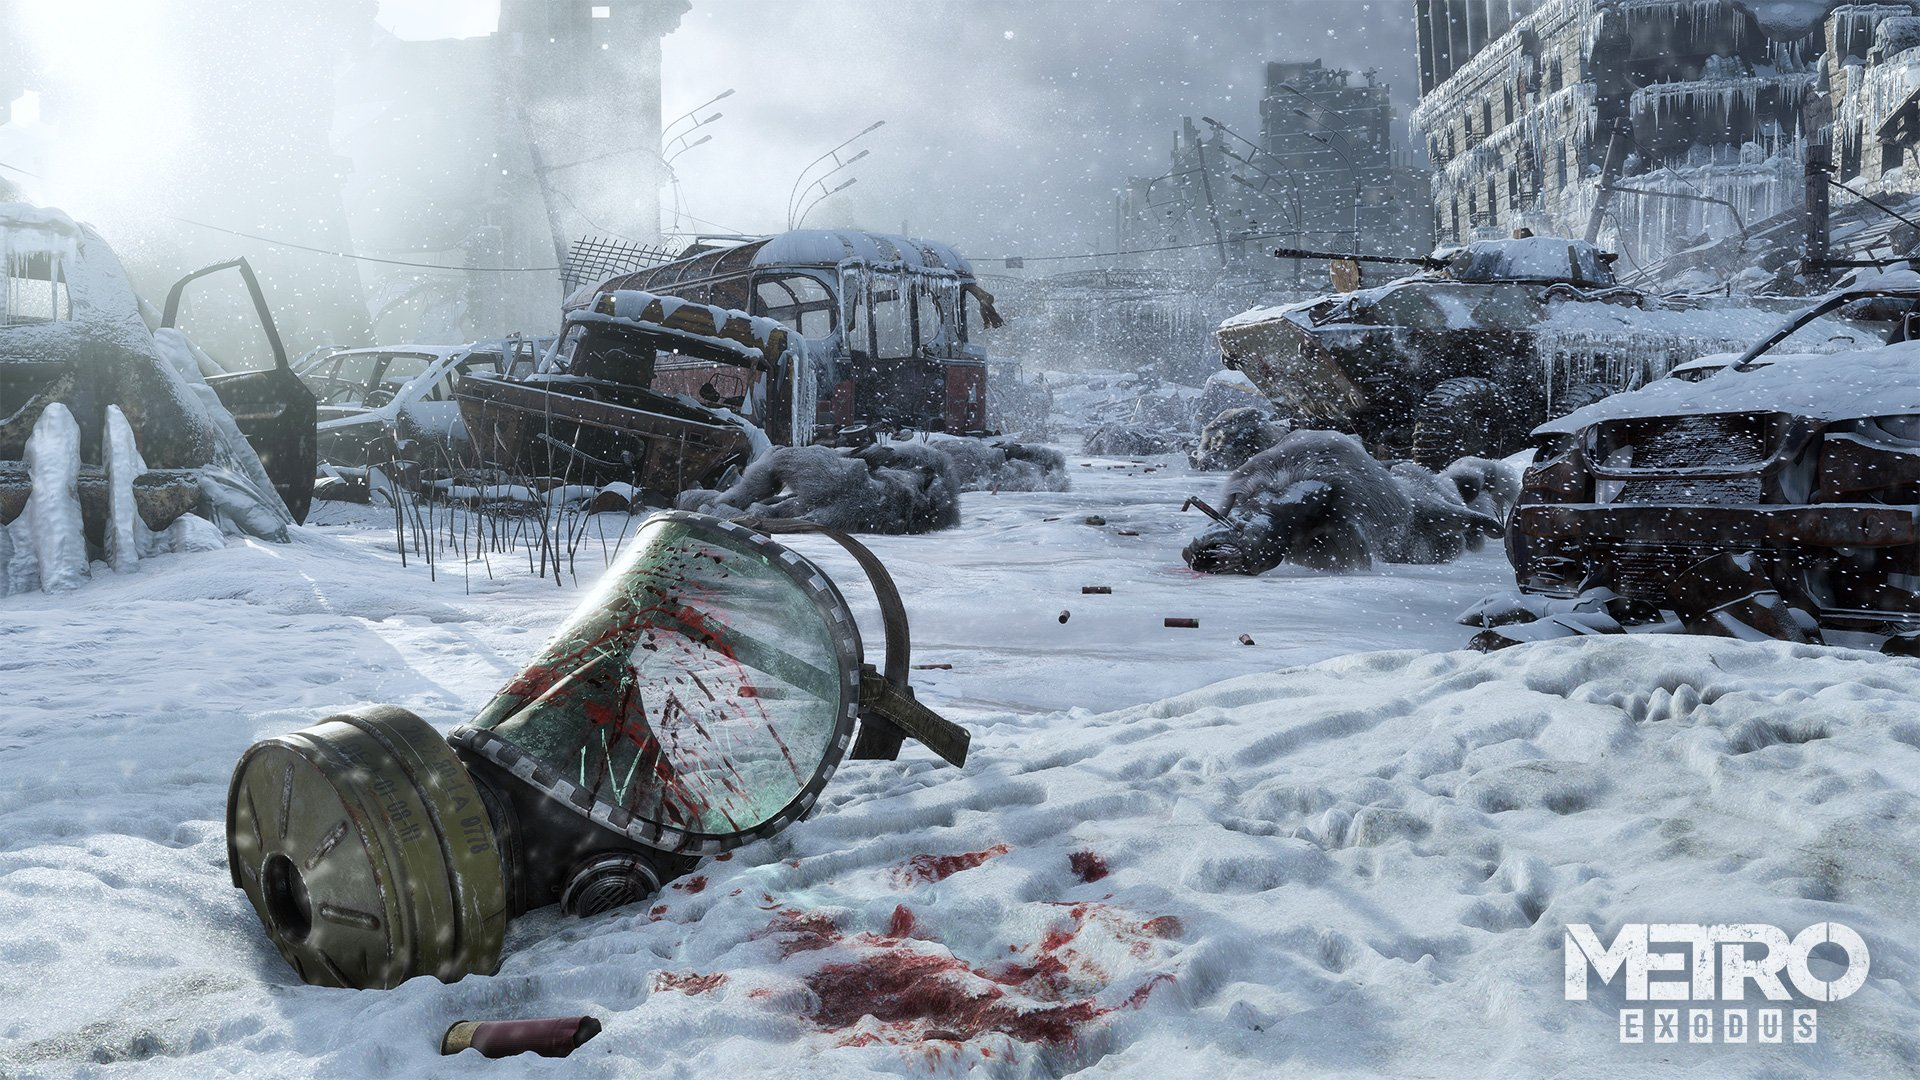 Metro Exodus gas mask in the dead city